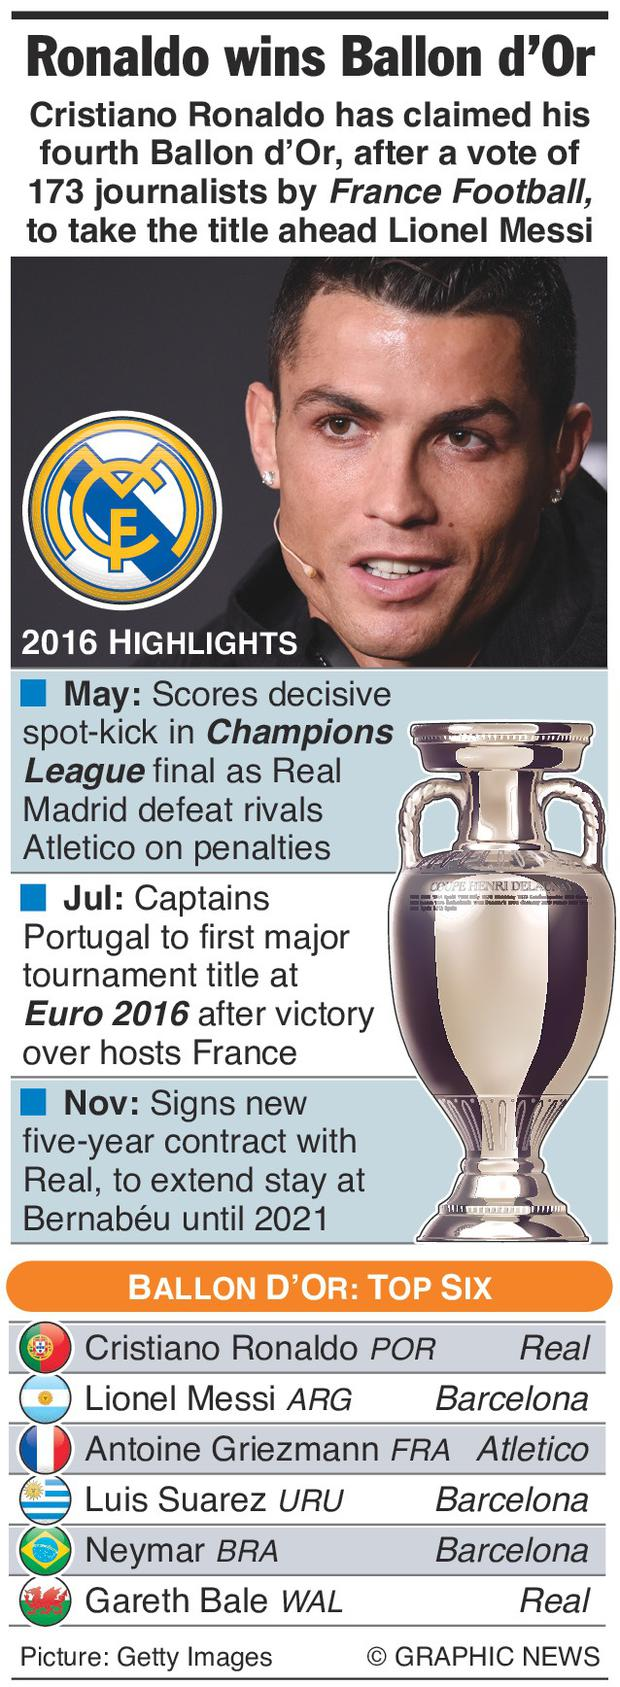 Graphic shows 2016 highlights of Real Madrid forward Cristiano Ronaldo